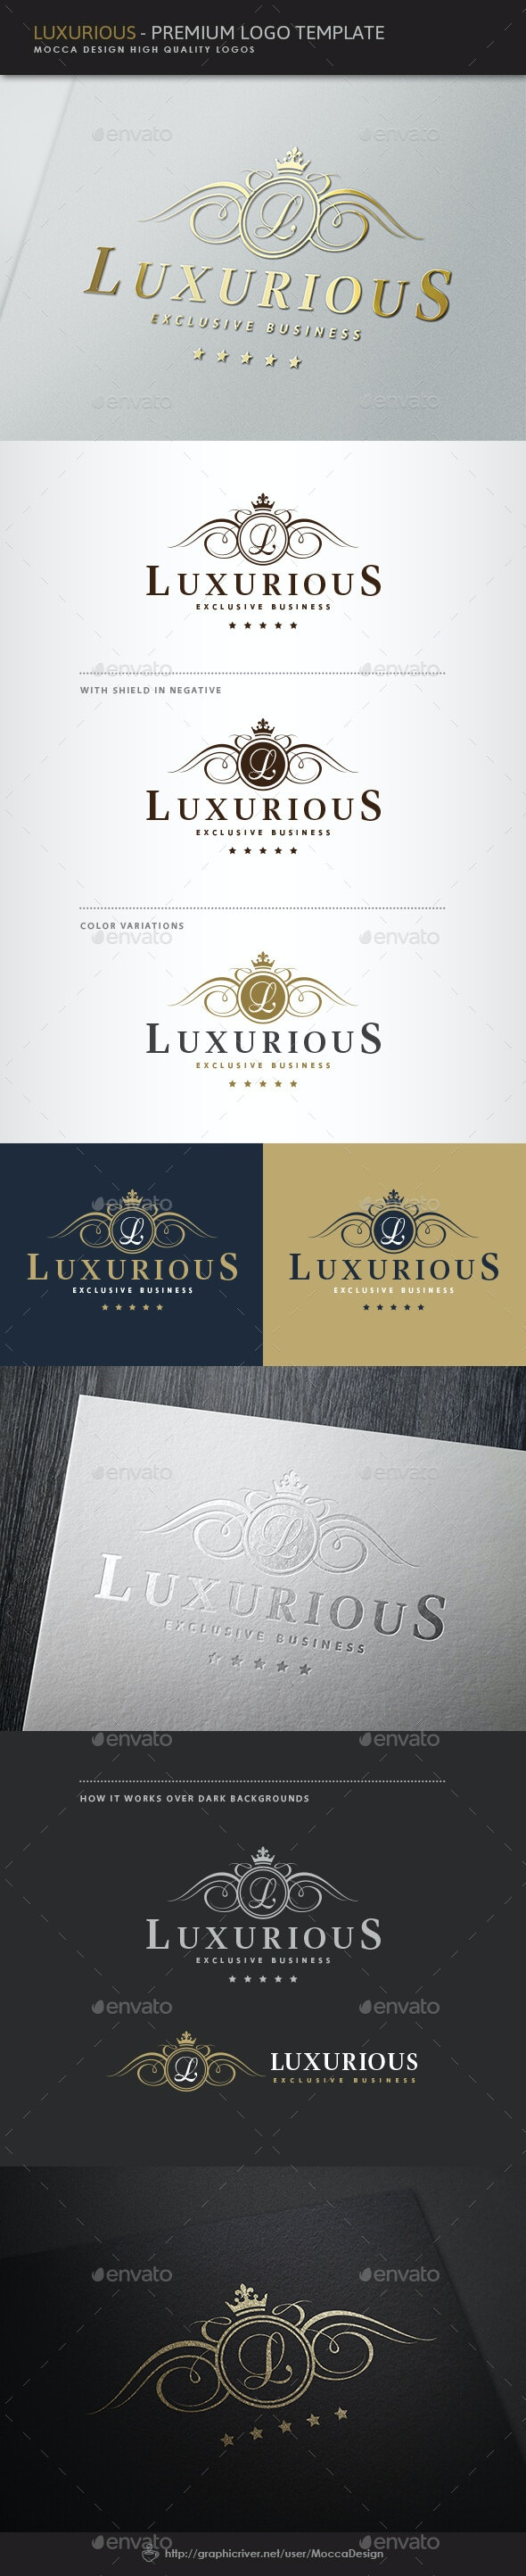 Luxurious Logo - Crests Logo Templates